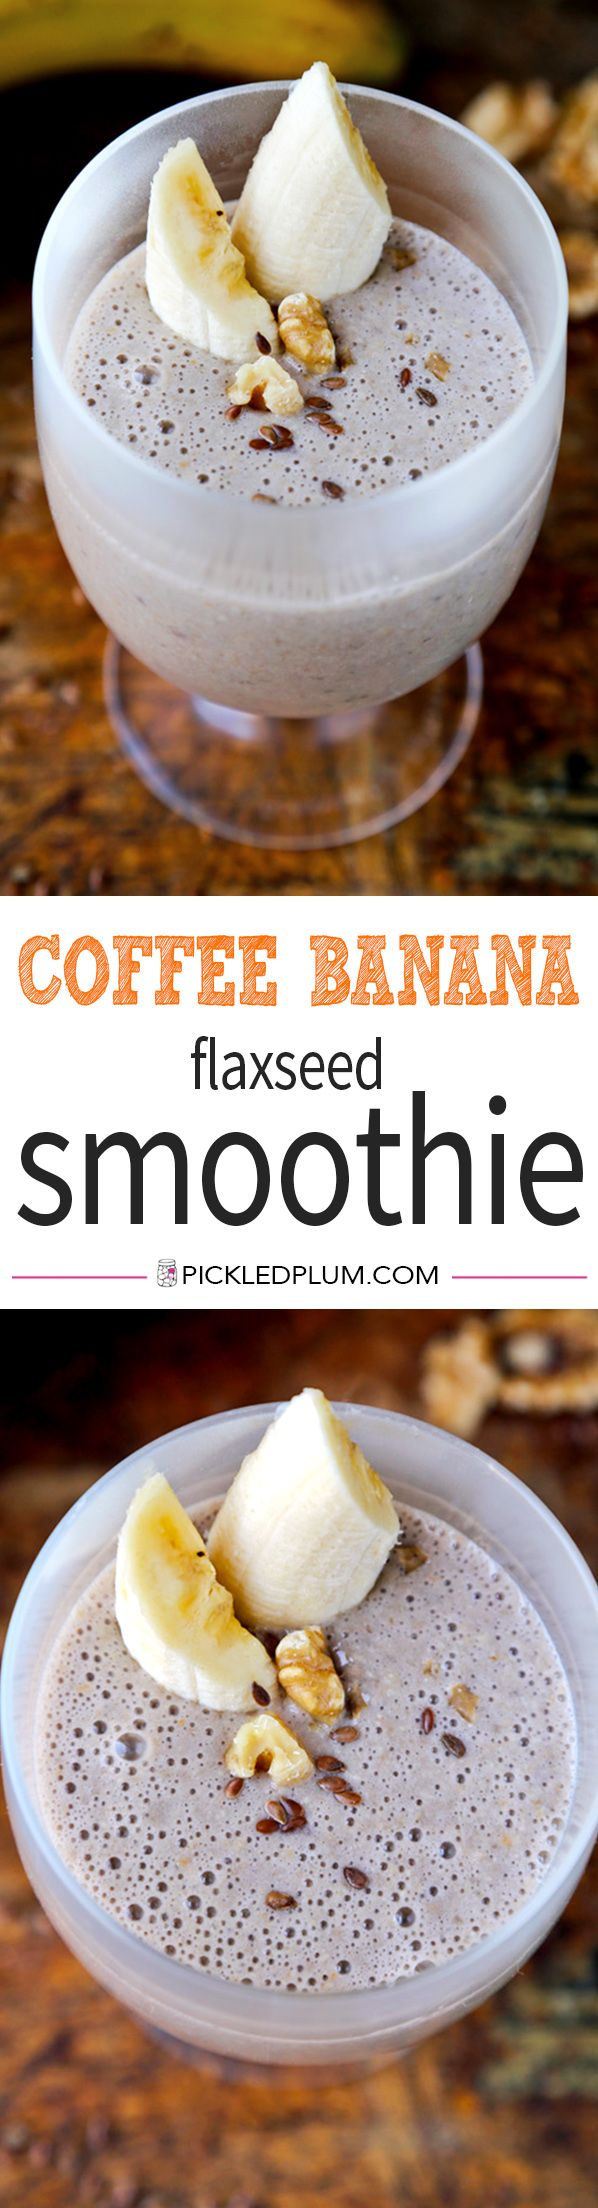 Coffee-Banana-Flaxseed Smoothie - The sweetest way to get a caffeine jolt in the morning! We love this for breakfast! Drinks, Healthy | pickledplum.com